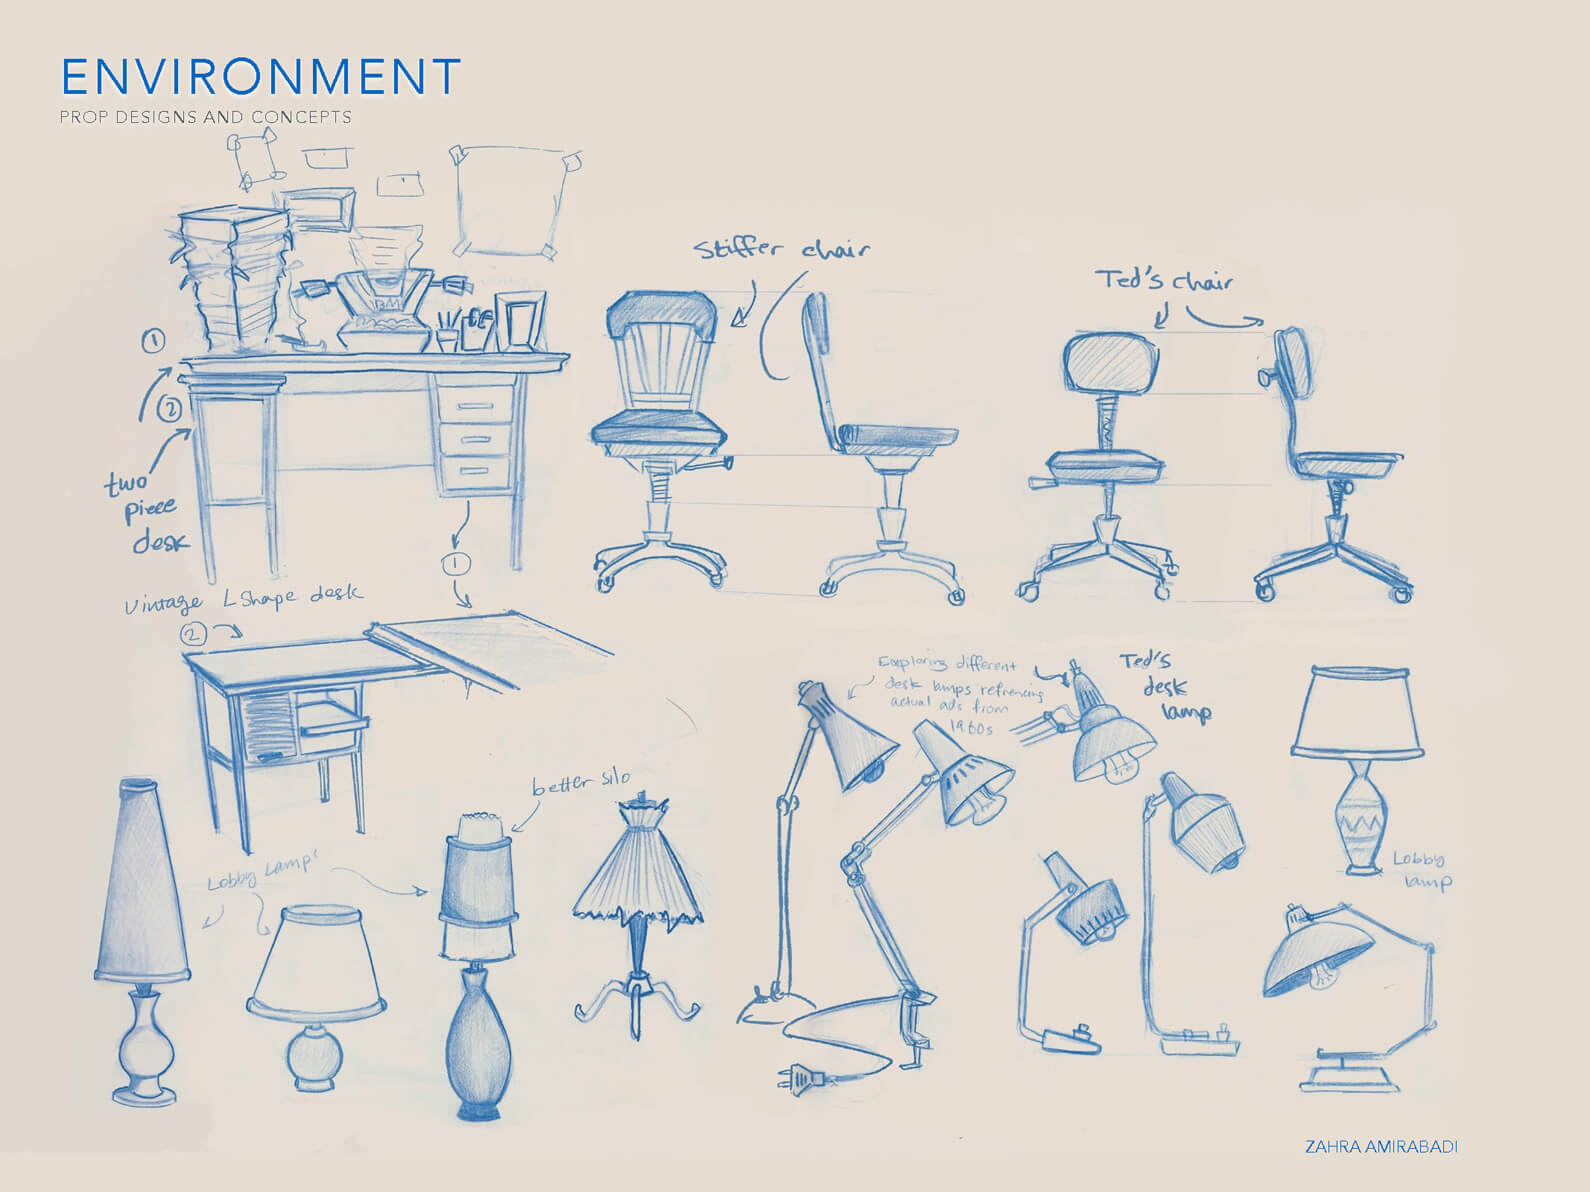 Blue line sketches of concepts for desk, chair, and lamp props for Orientation Center for the Unseen